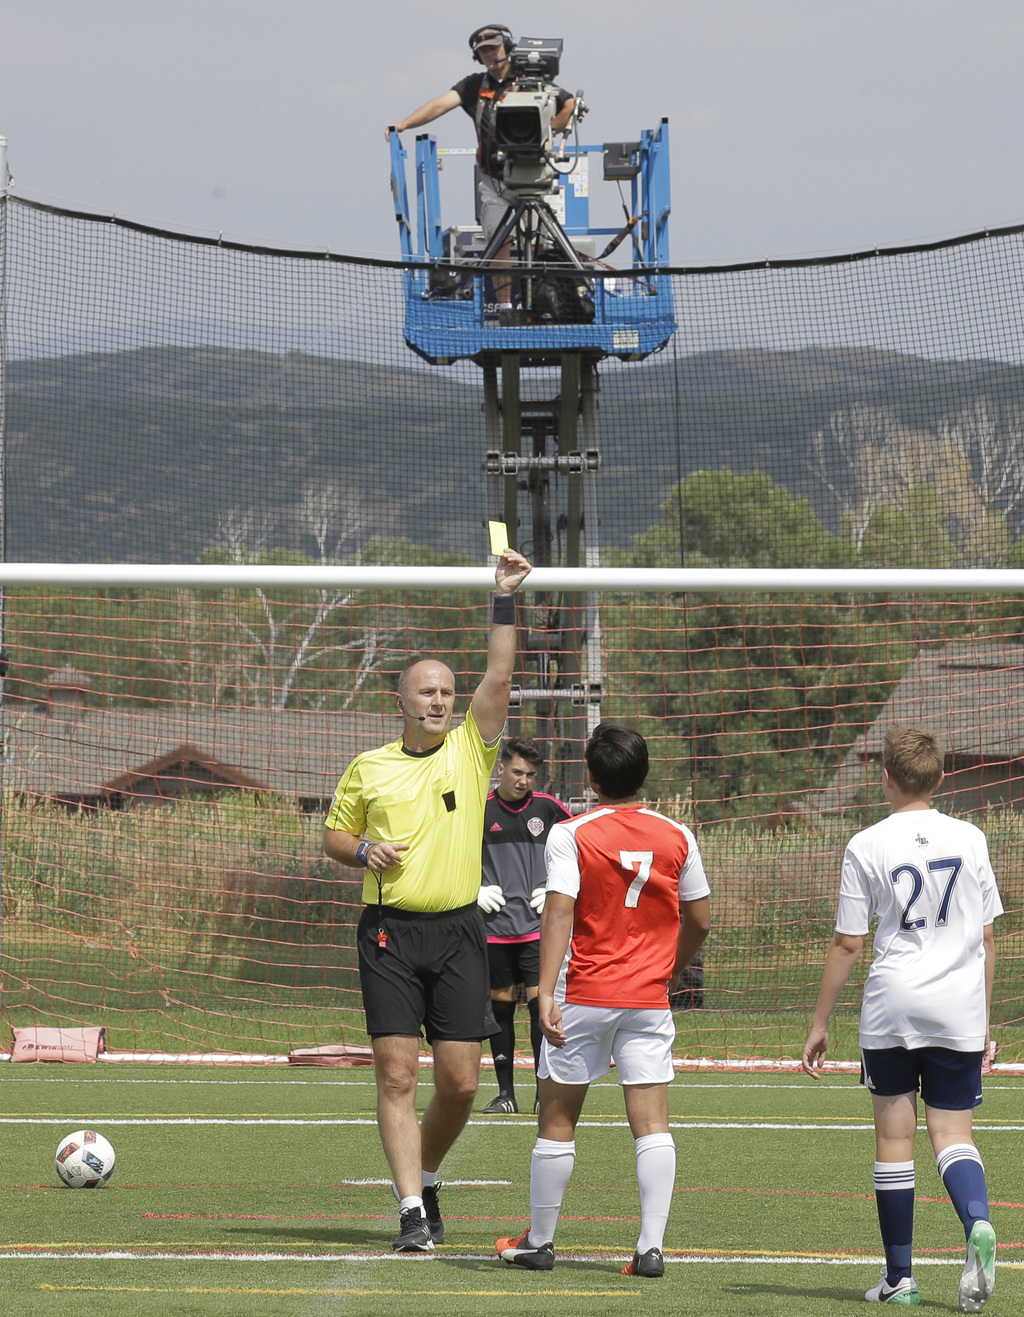 In this July 11, 2017, photo, MLS referee Silviu Petrescu raises a yellow card against a player after using video replay during scrimmages organized i...